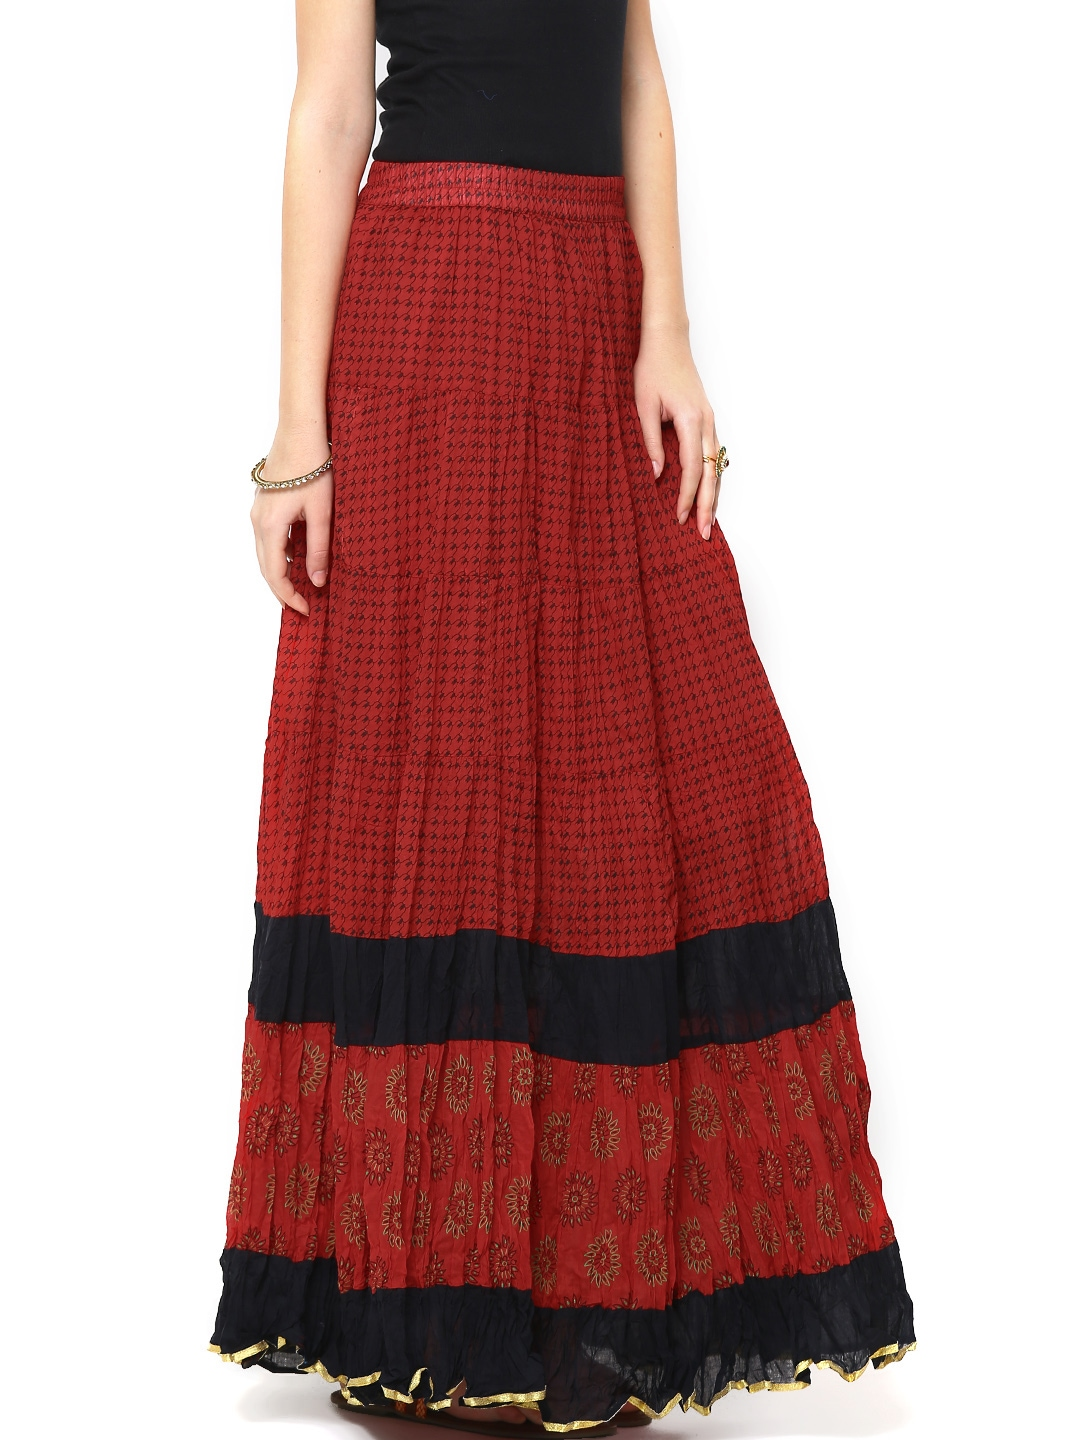 Shop latest Maxi Dresses on Sale at nazhatie-skachat.gq More styles like Sexy Maxi Dresses, Long Maxi Dresses, buy Cheap Maxi Dresses online with high quality!